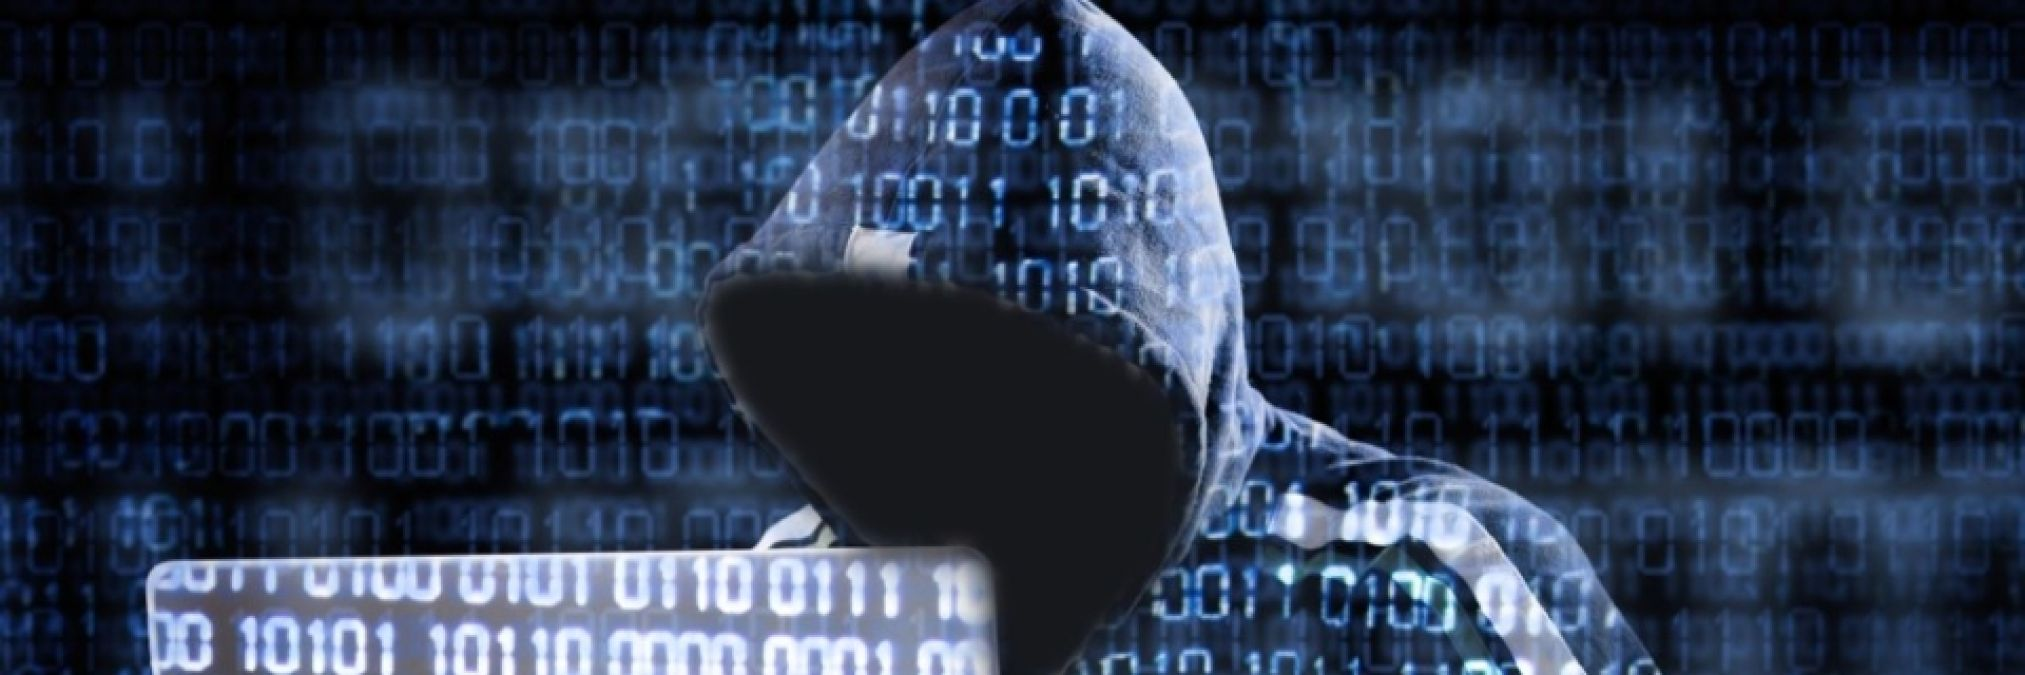 Indian companies in loss from data theft